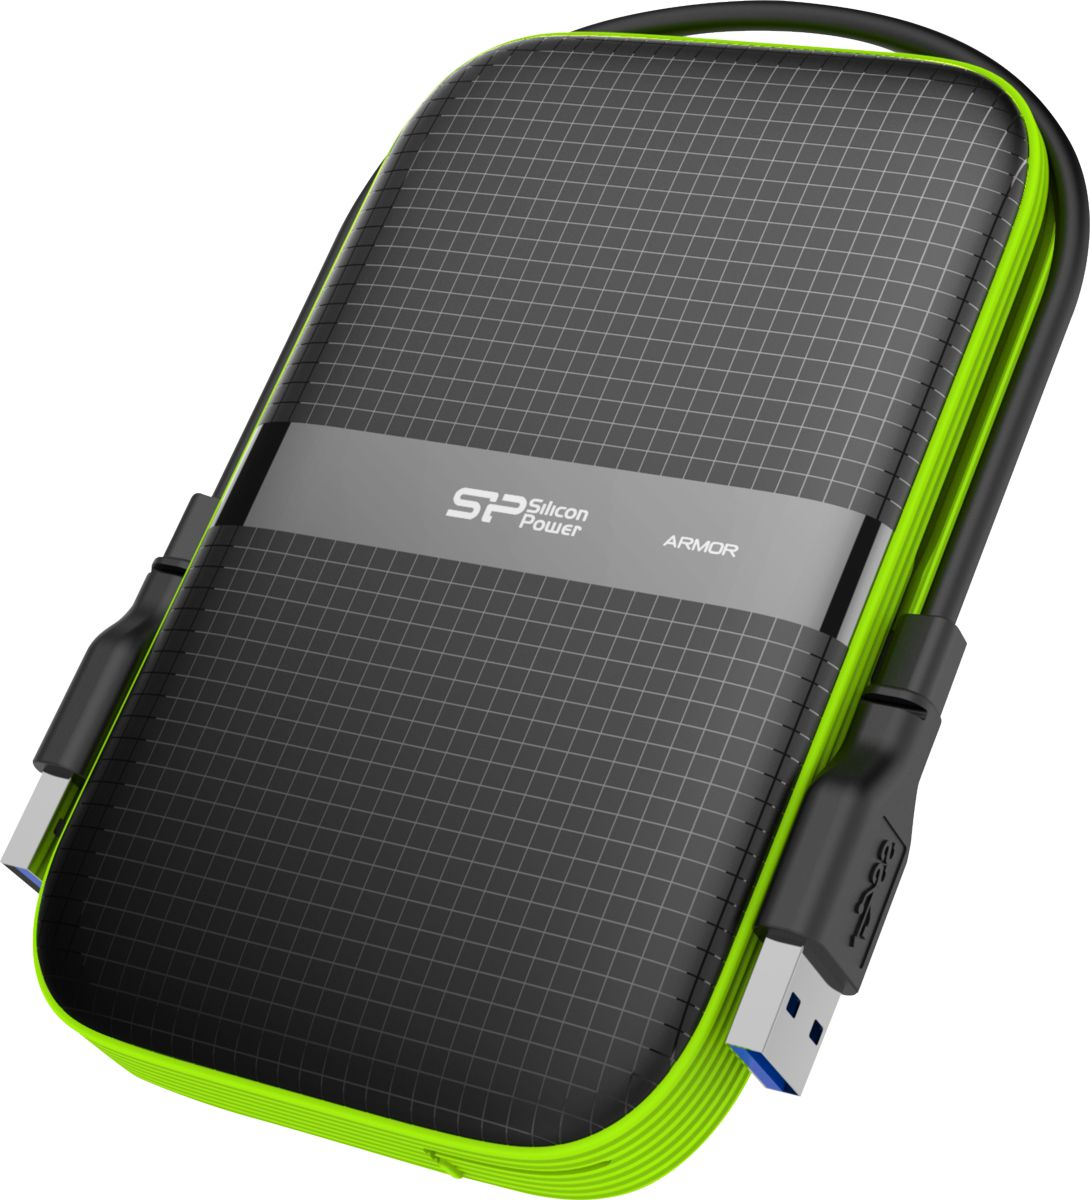 "2.5""Shockproof Portable Hard Drive / Silicon Power Computer & Communications Inc."